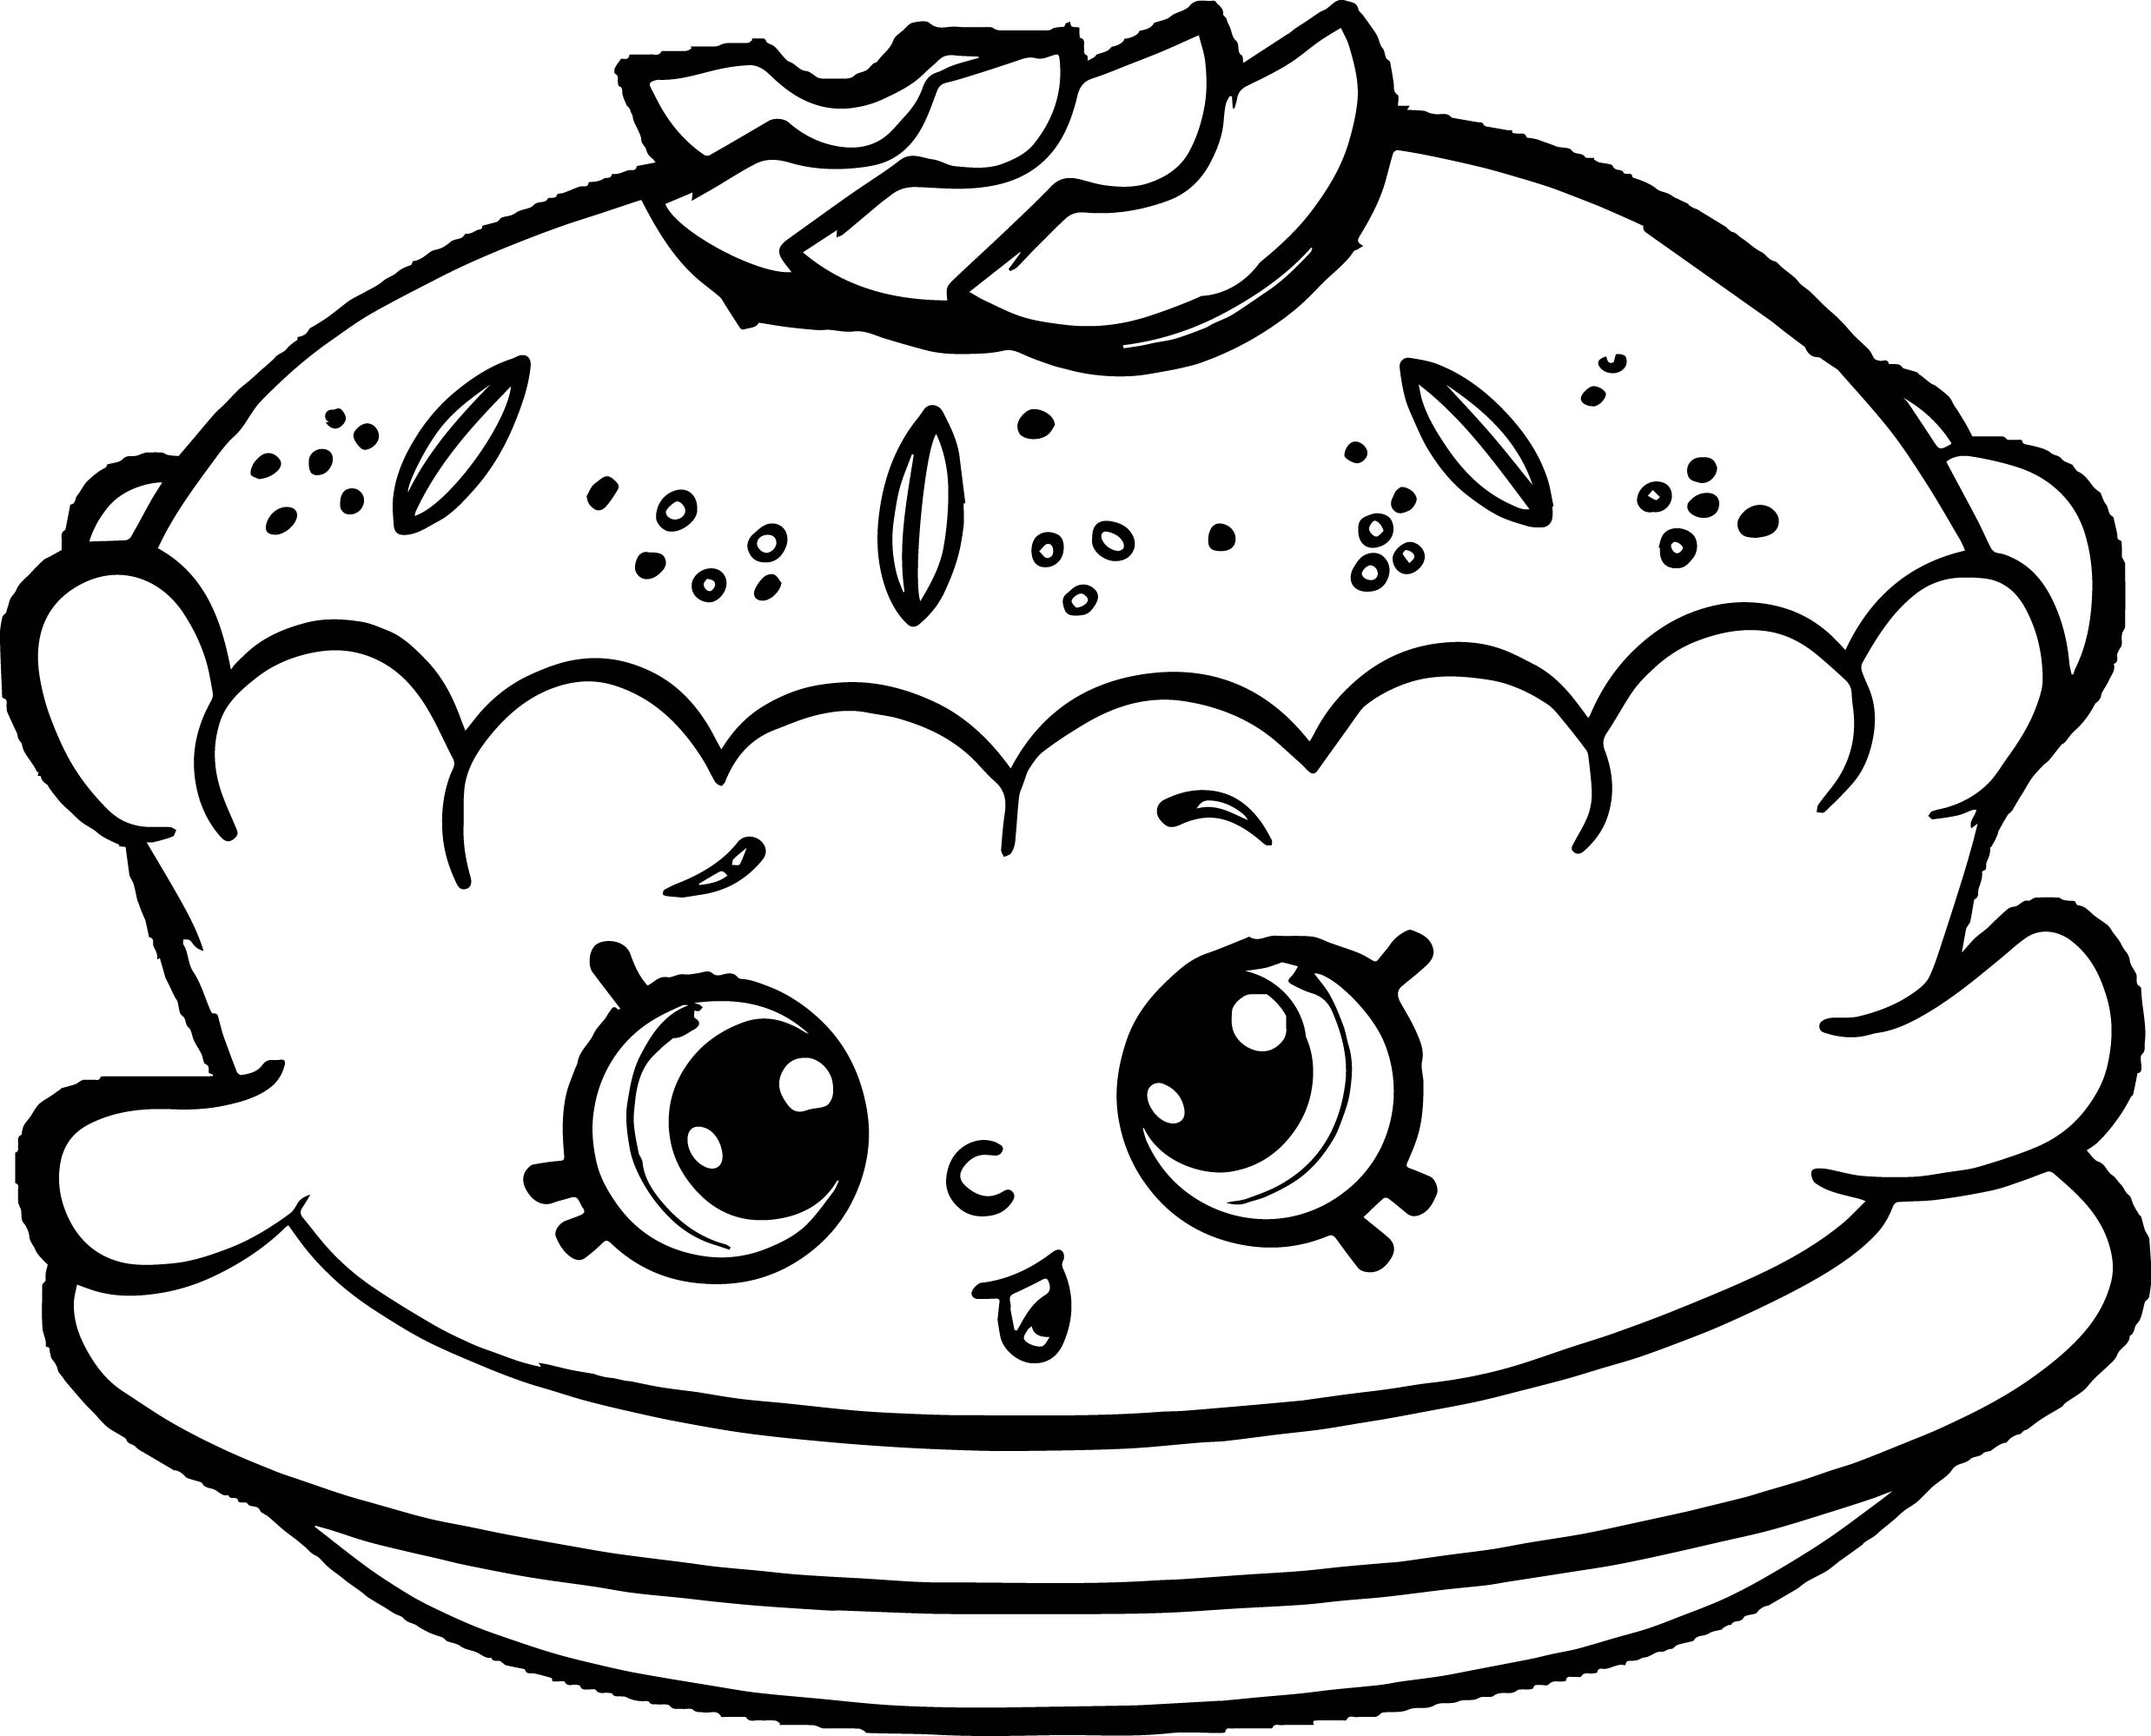 pie coloring page - apple pie alice coloring page